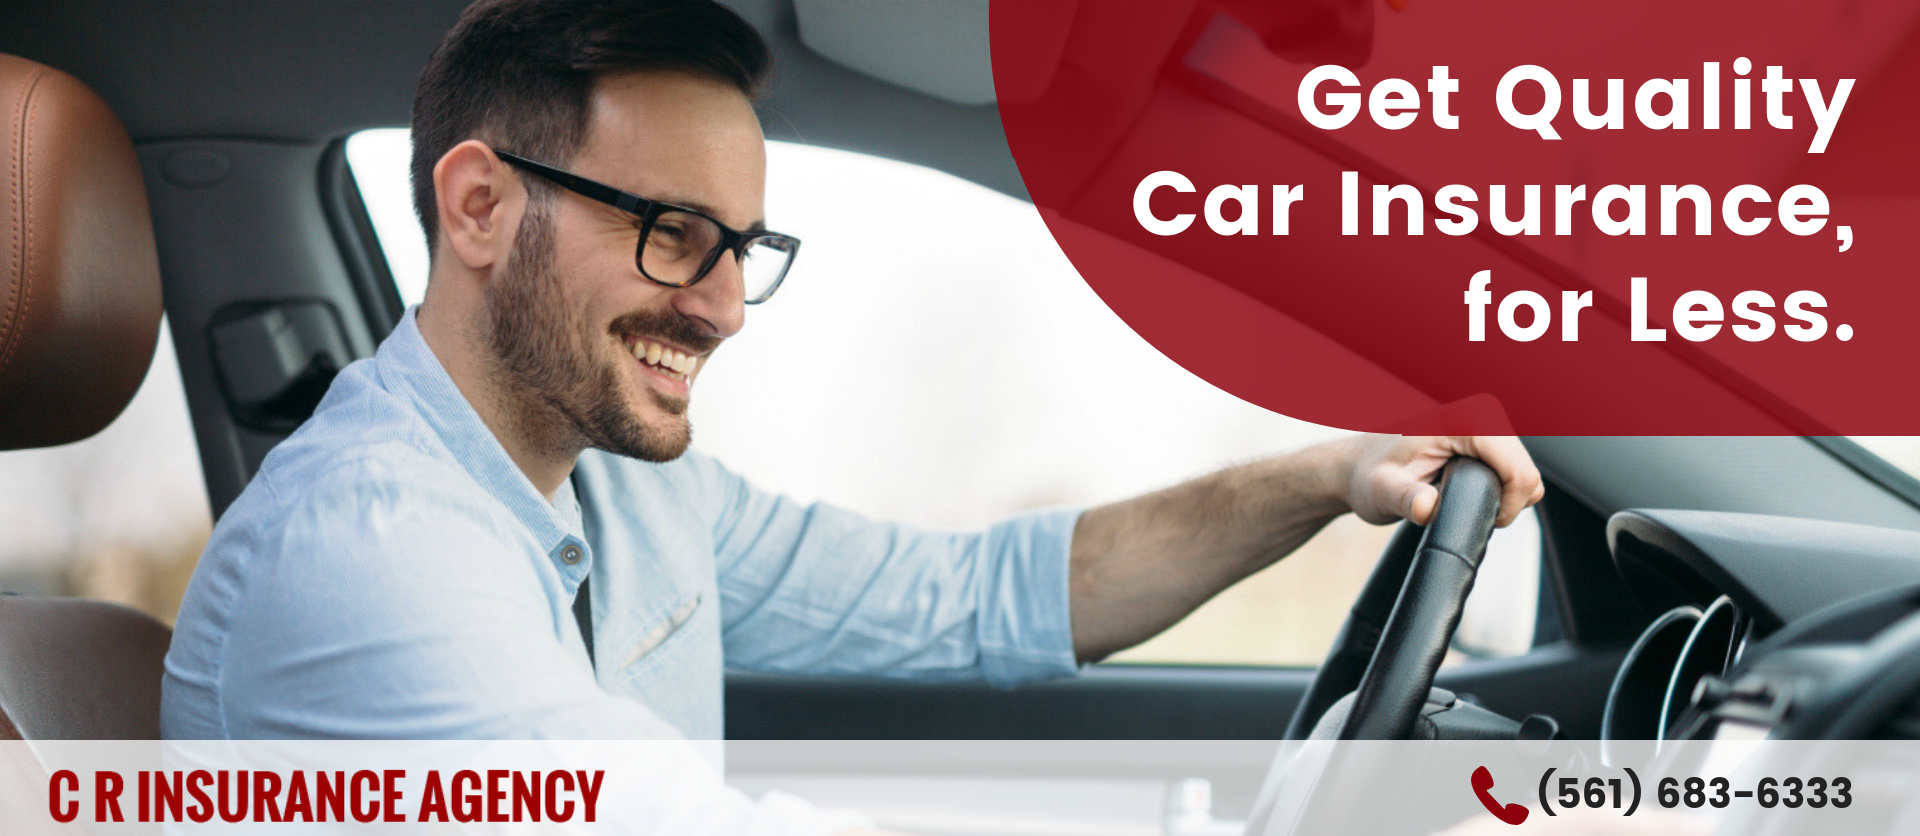 Is Your Car Protected From Disasters Auto Insurance Is An Important Safeguard To Protect Your Vehicle Fro Car Insurance Insurance Quotes Auto Insurance Quotes